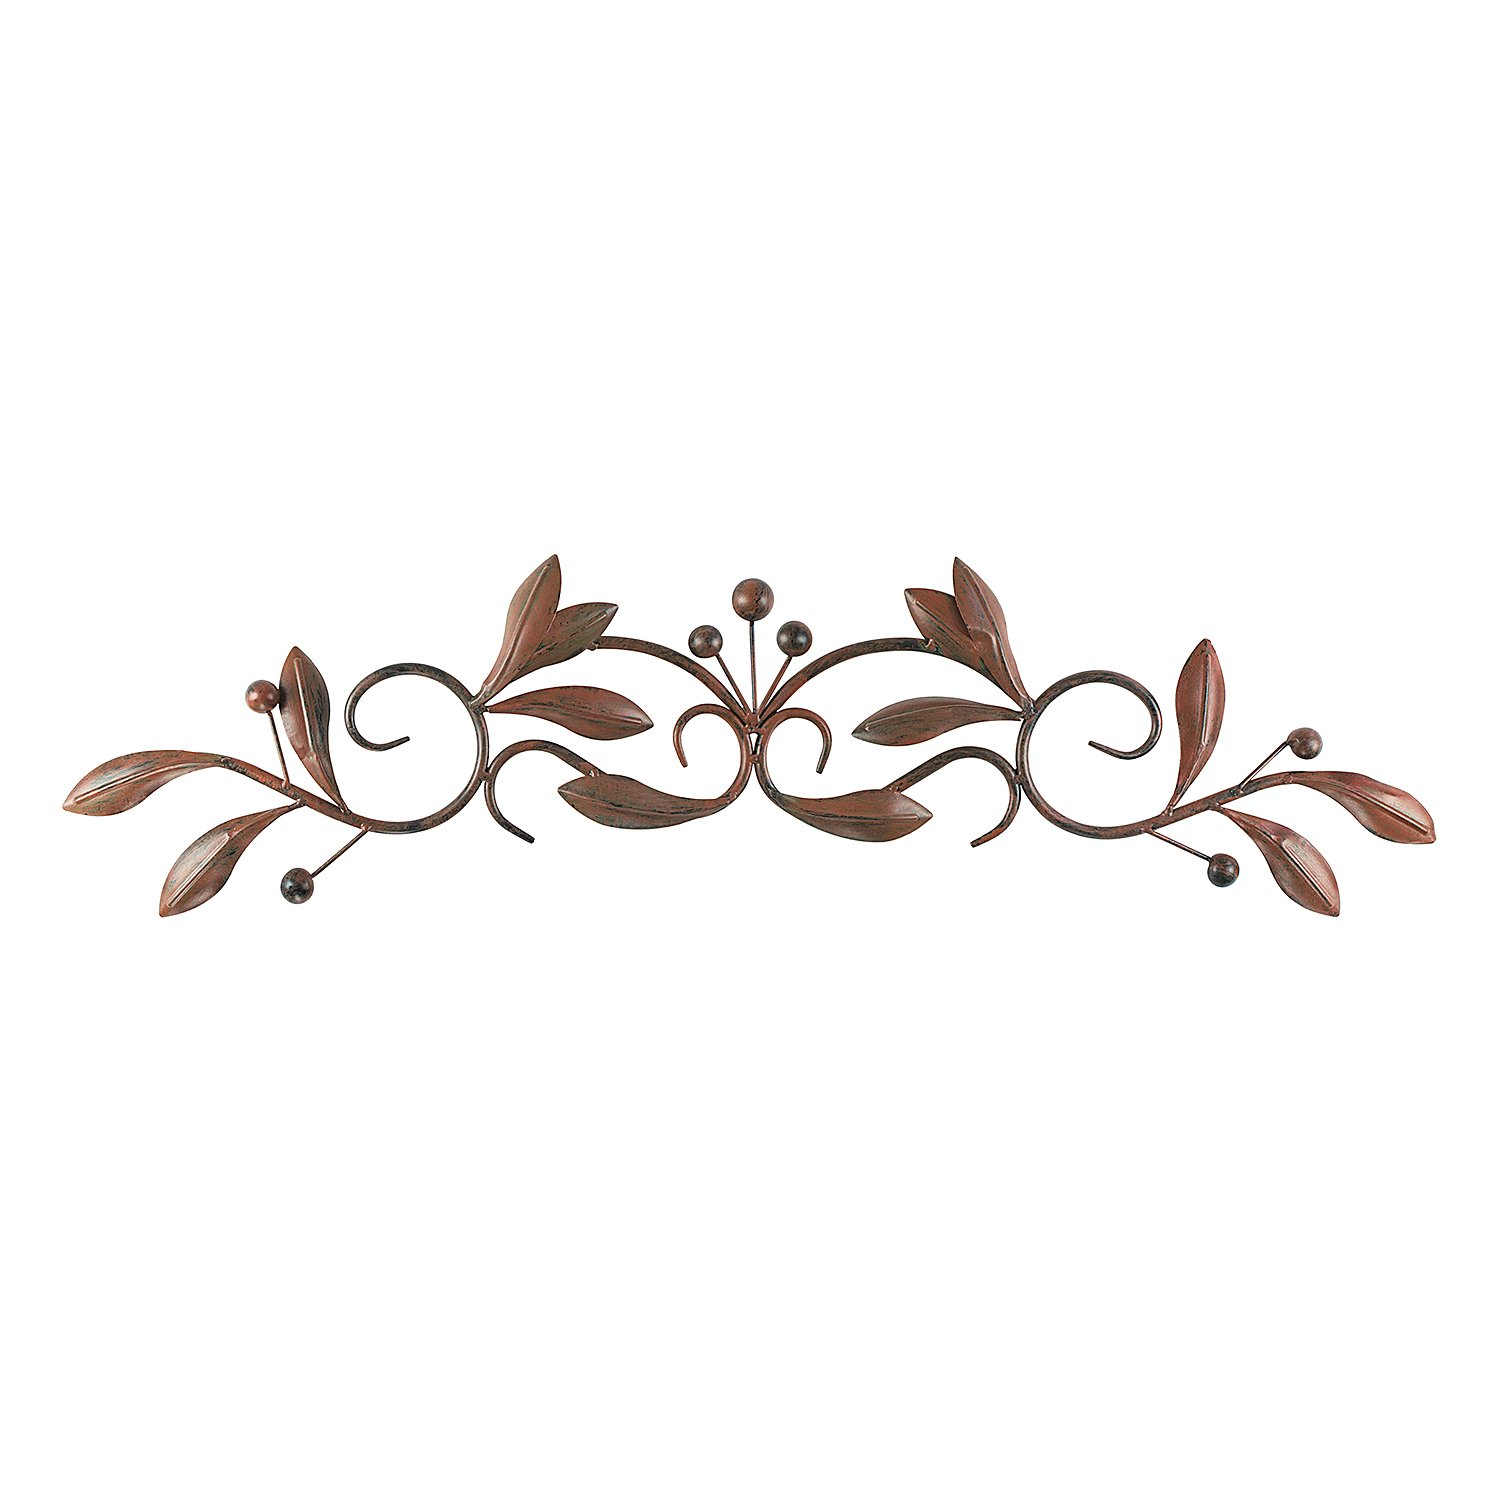 Super Z Outlet Brown Burnt Red Leaf & Beads Urban Design Iron Metal Wall Art Decoration for Home & Kitchen Gifts